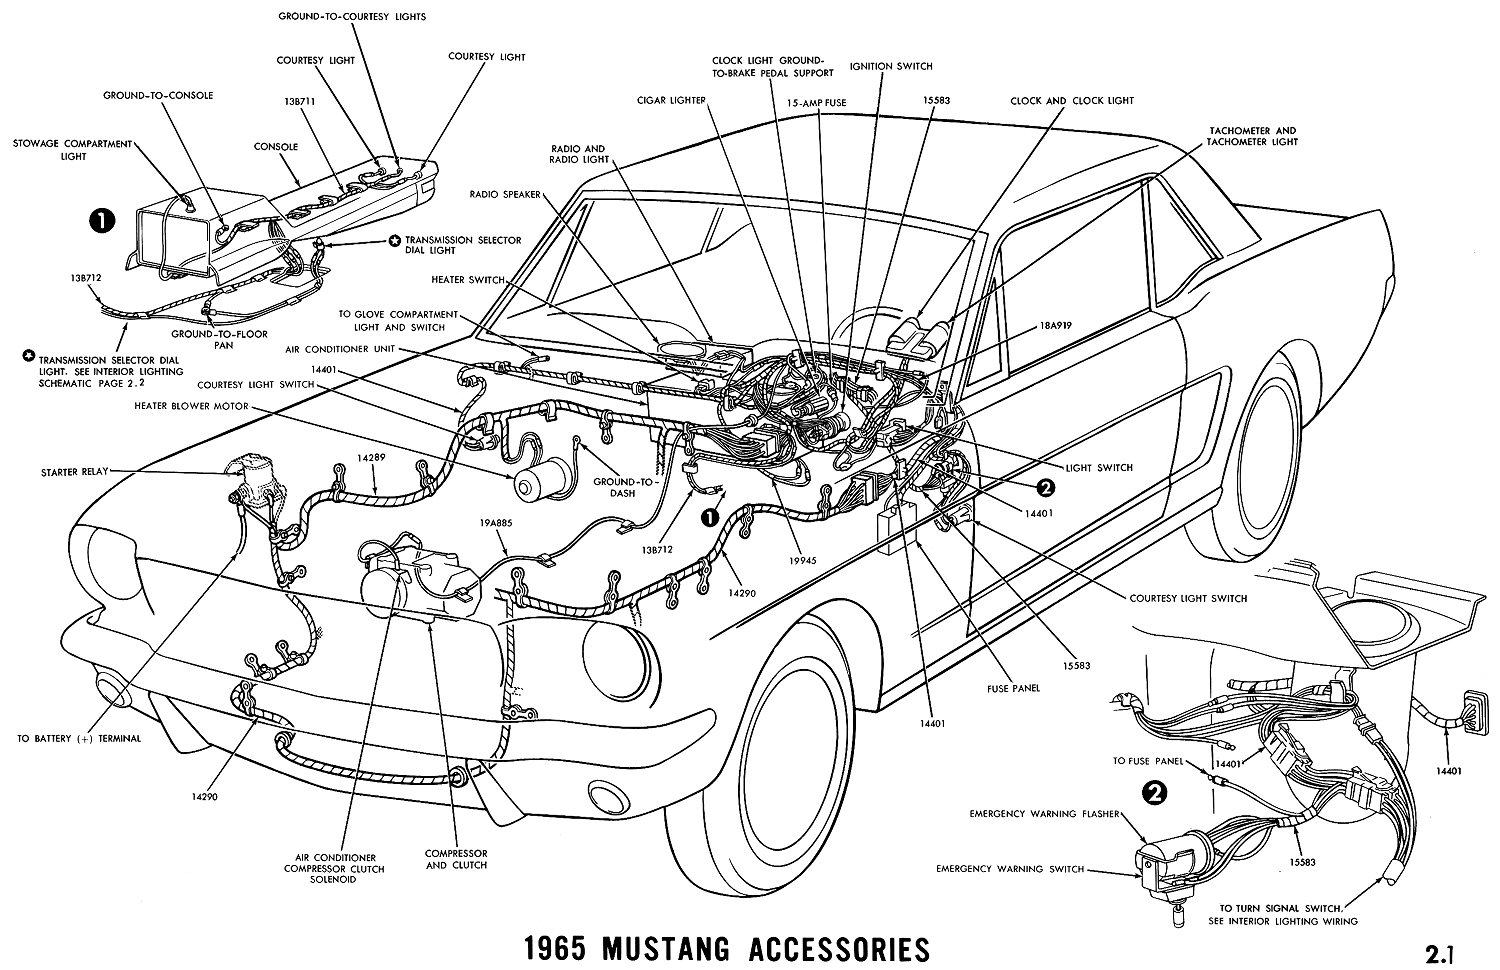 67 Mustang V8 Engine Diagram List Of Schematic Circuit Jeep Distributor Wiring For A 1965 Diagrams Average Joe Restoration Rh Averagejoerestoration Com